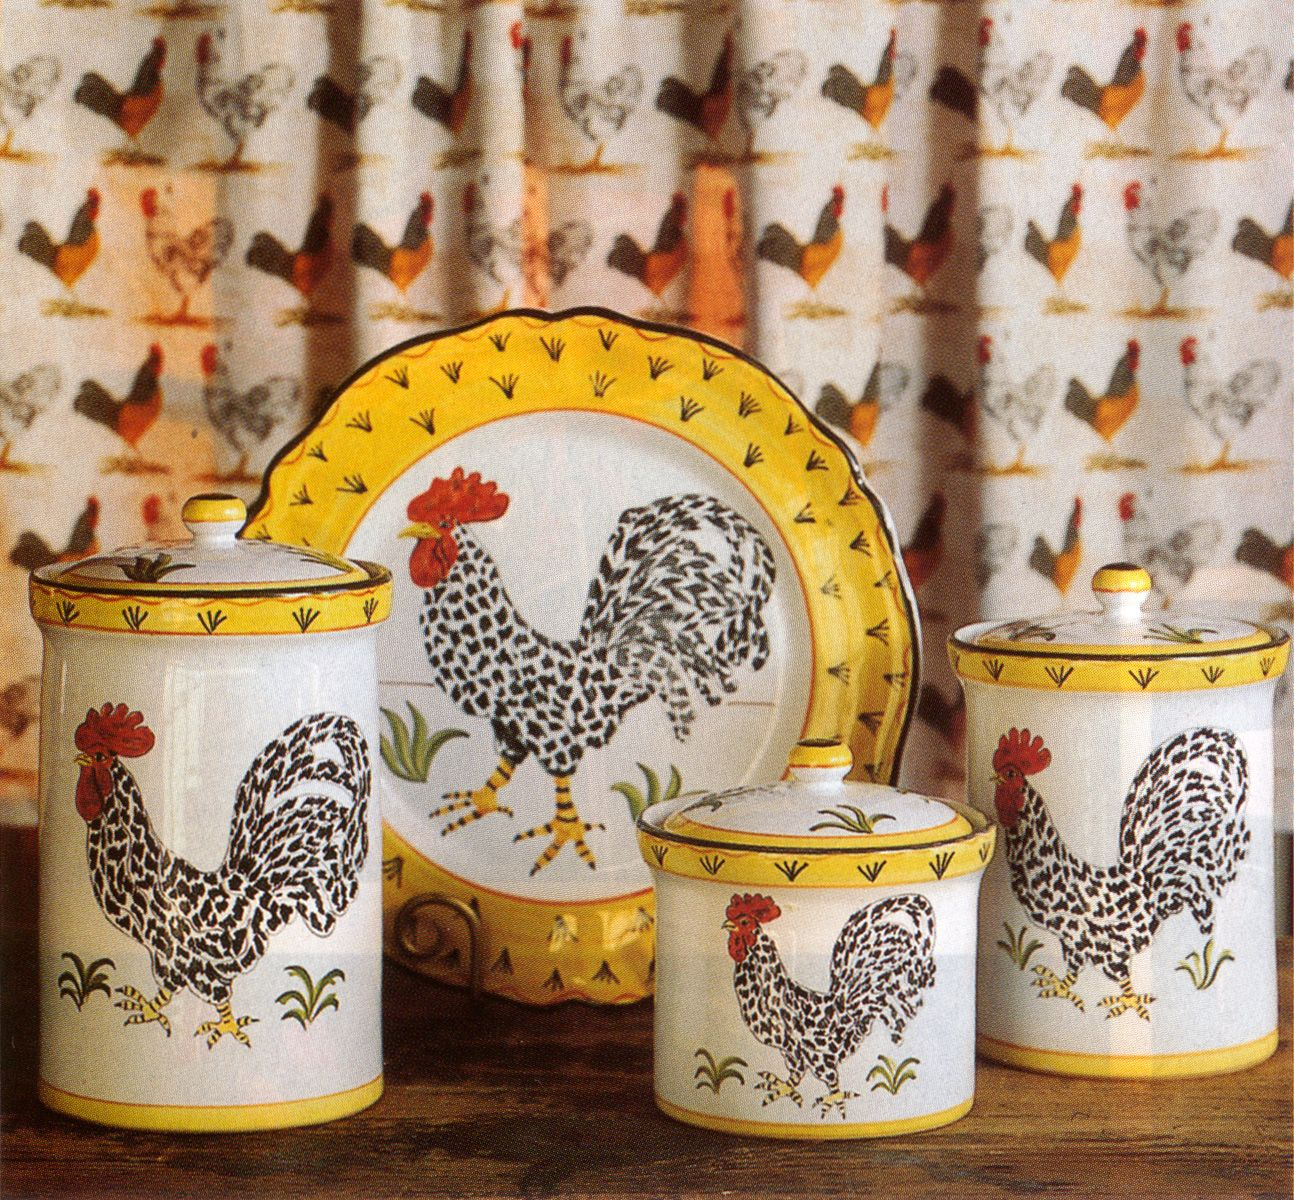 Plates Kitchen: Rooster Canisters & Plate, Made In Italy I Would Like To